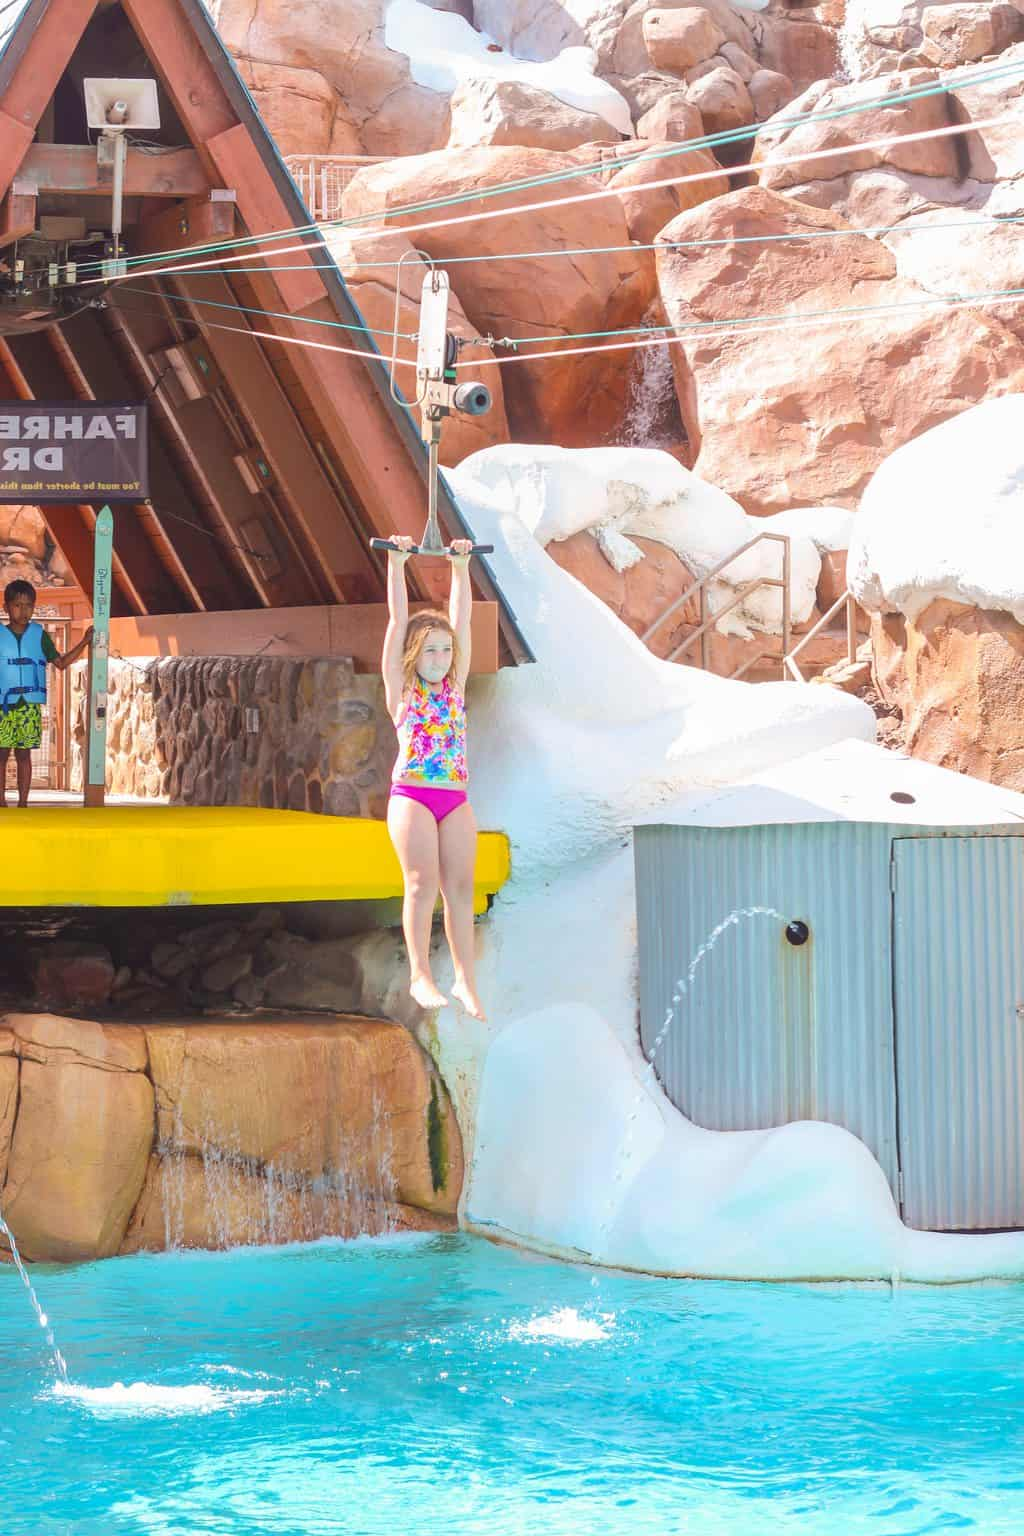 Disney's Blizzard Beach Water Park. Ultimate guide to plan a disney world vacation. Tips and tricks to planning a family vacation to disney world. Disney world parks, hotels, flights and so much more!